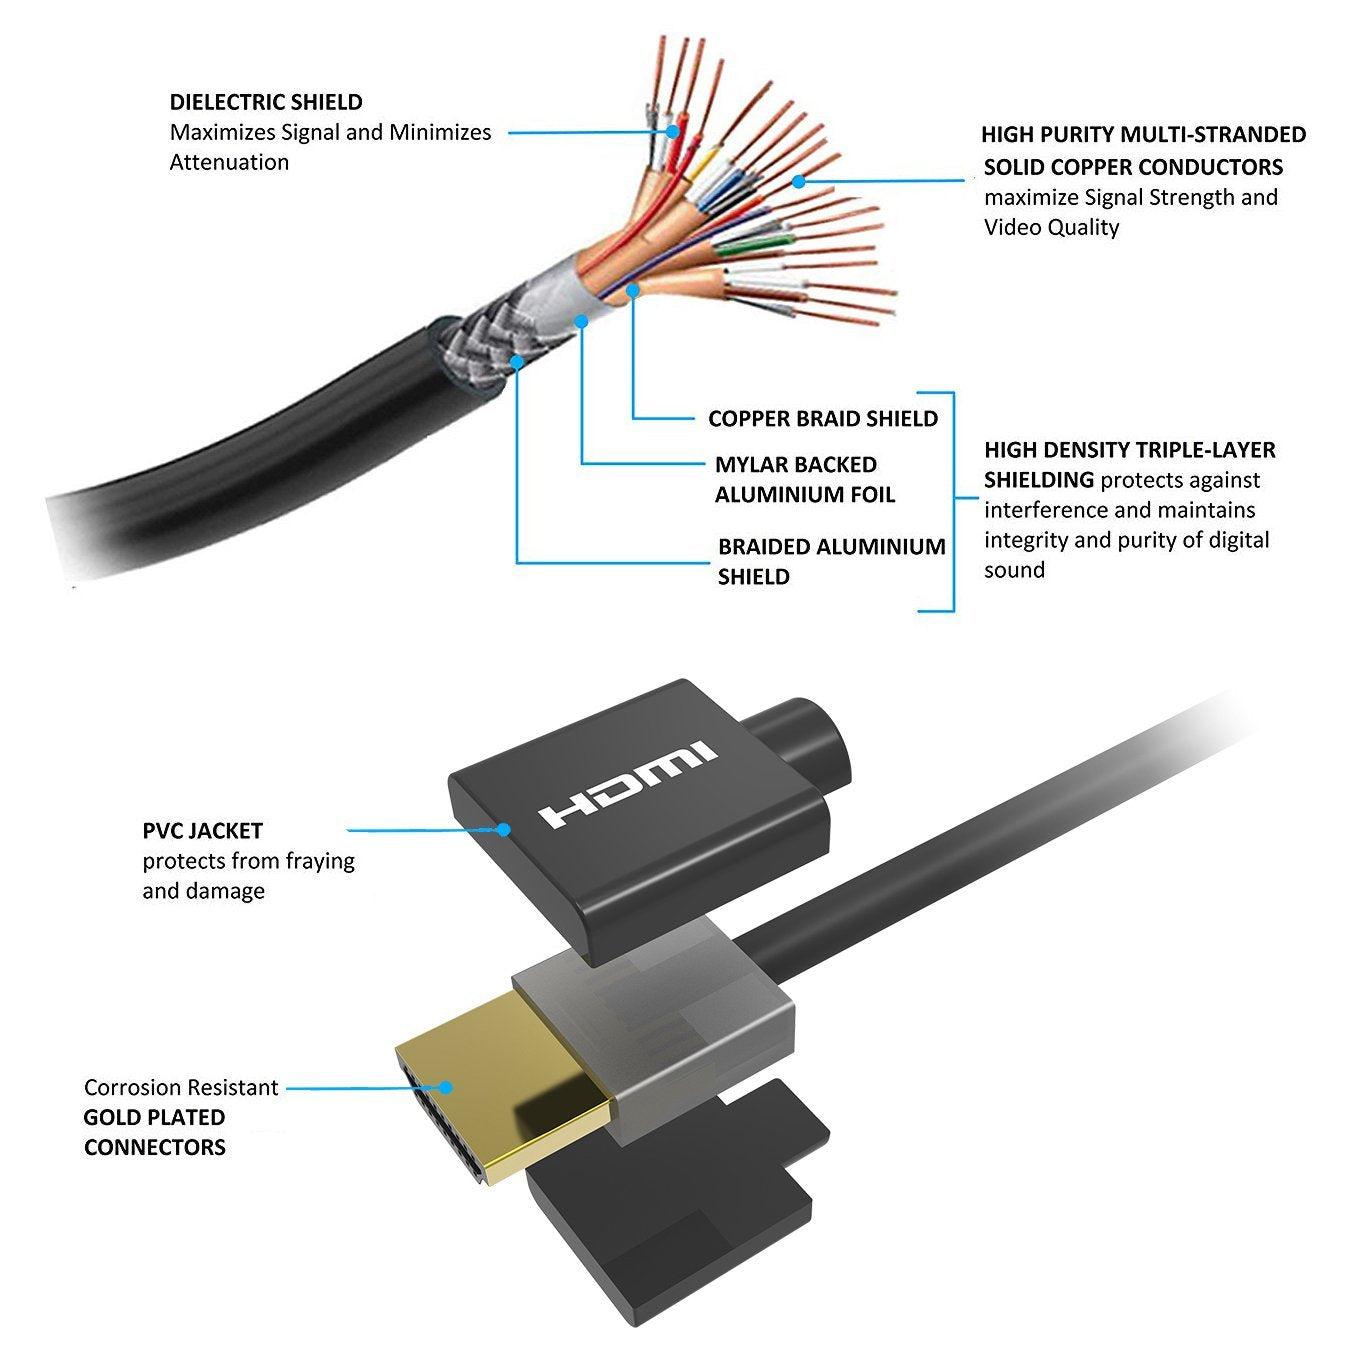 HDMI 2.0 Compliant for 4K UHD @60Hz UL Listed Accell High Speed HDMI Active Cable 100 Feet CL3 Rated Built-in Redmere Signal Repeater Ethernet